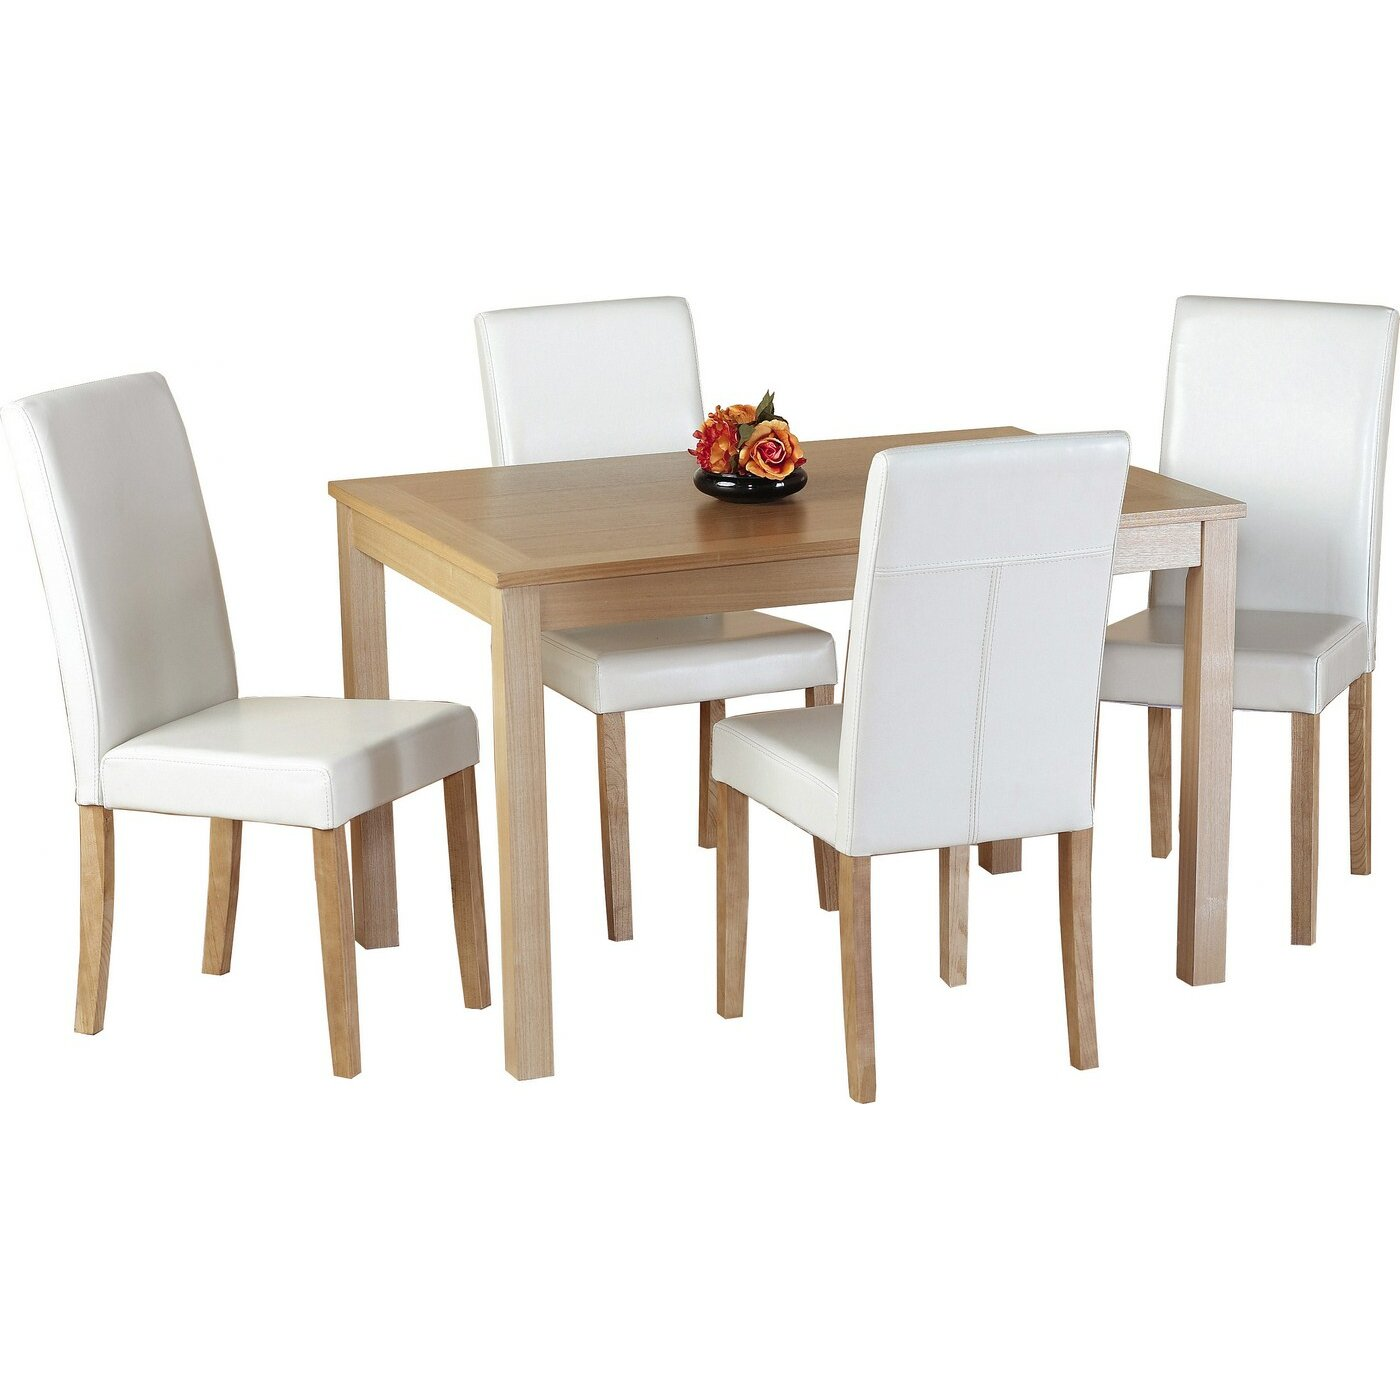 Home Haus Ivana Dining Table And 4 Chairs Reviews Wayfair Uk